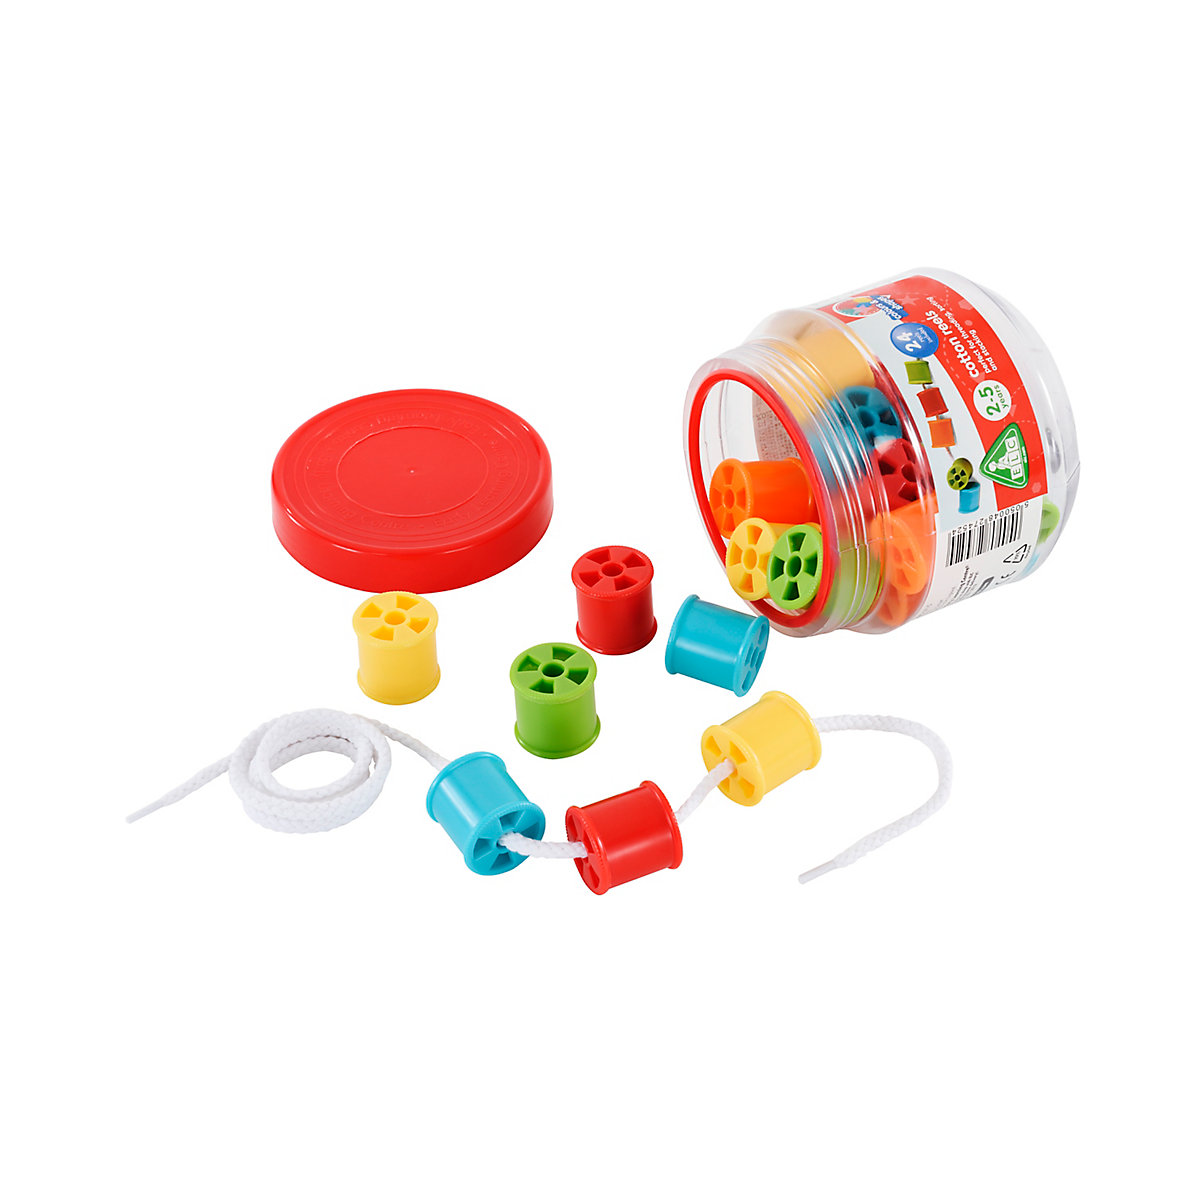 Cotton Reels Toy From 2 years